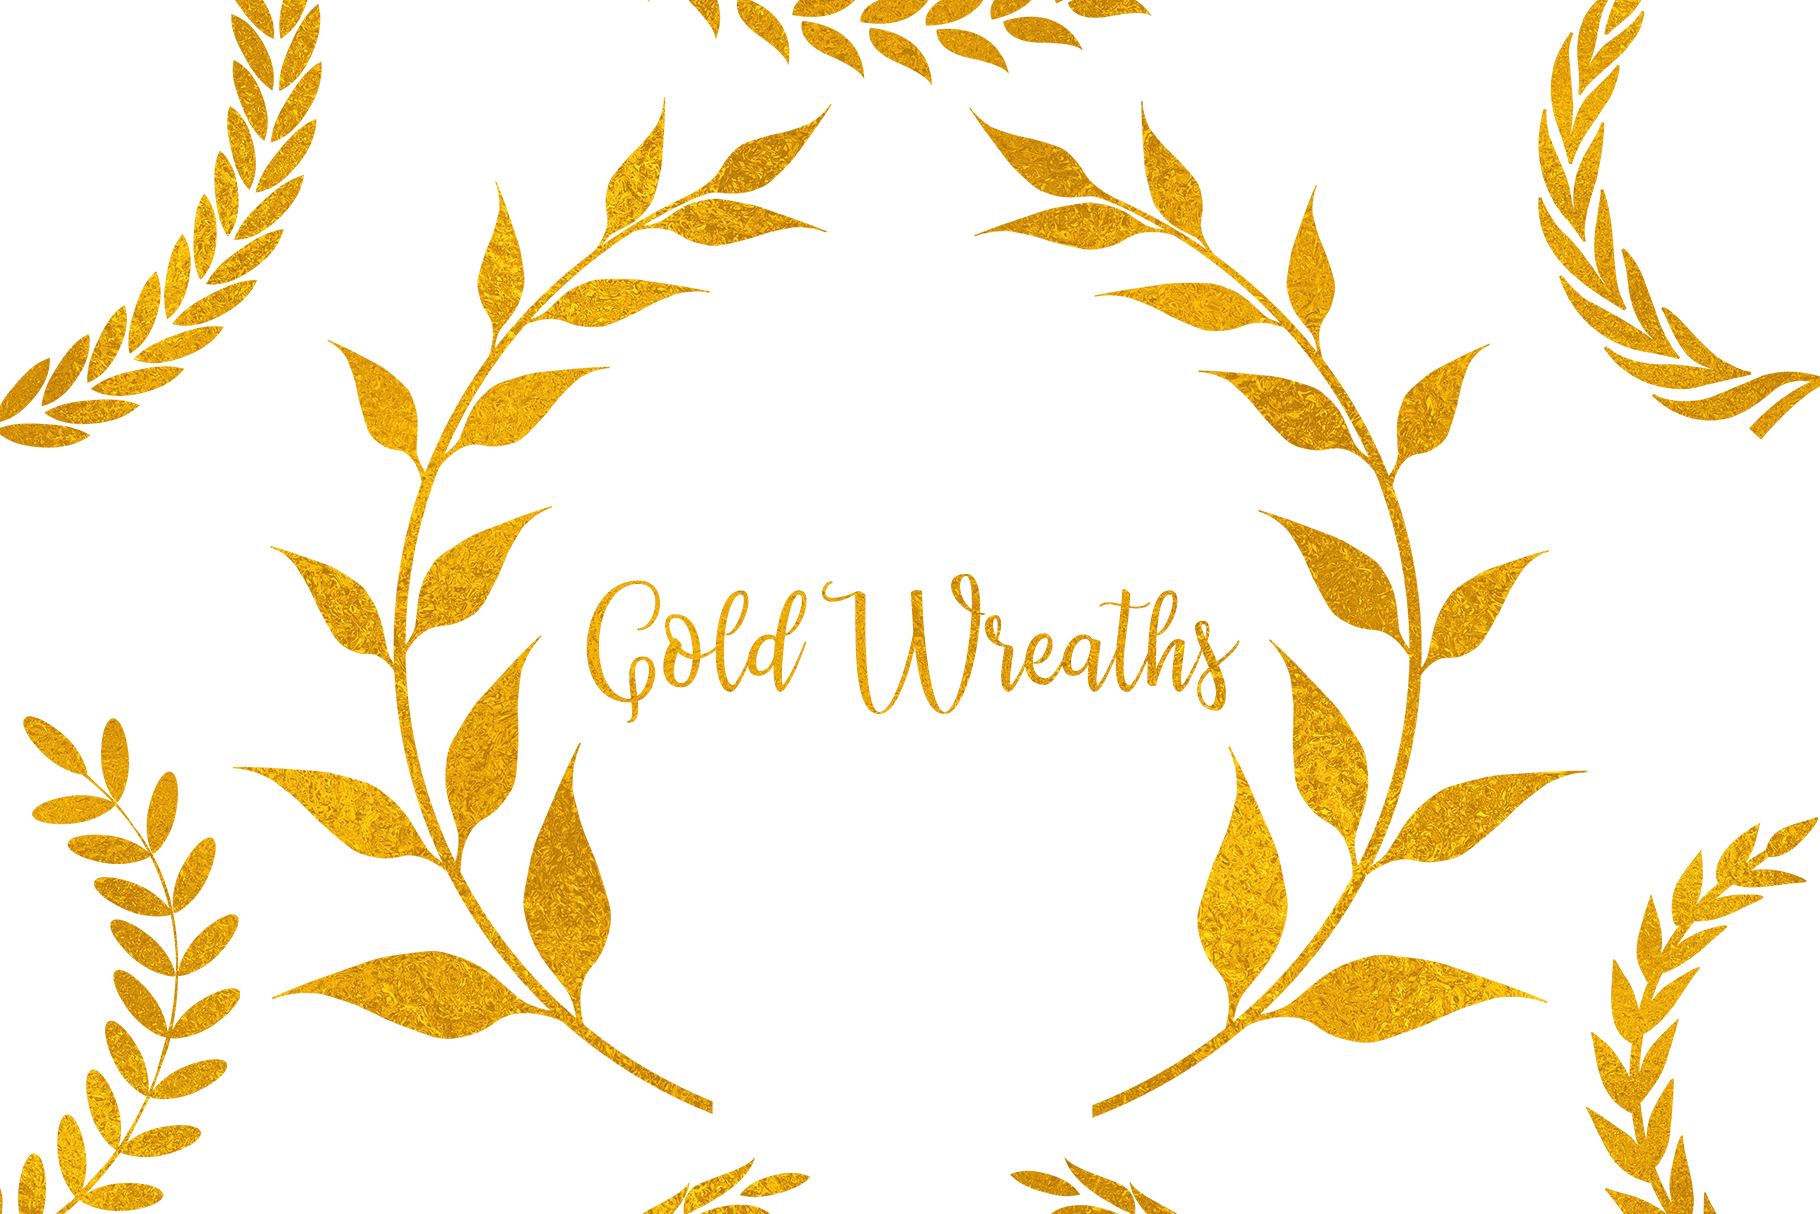 Download Free Gold Wreaths Clipart Gold Frame Clipart Graphic By Bonadesigns Creative Fabrica for Cricut Explore, Silhouette and other cutting machines.